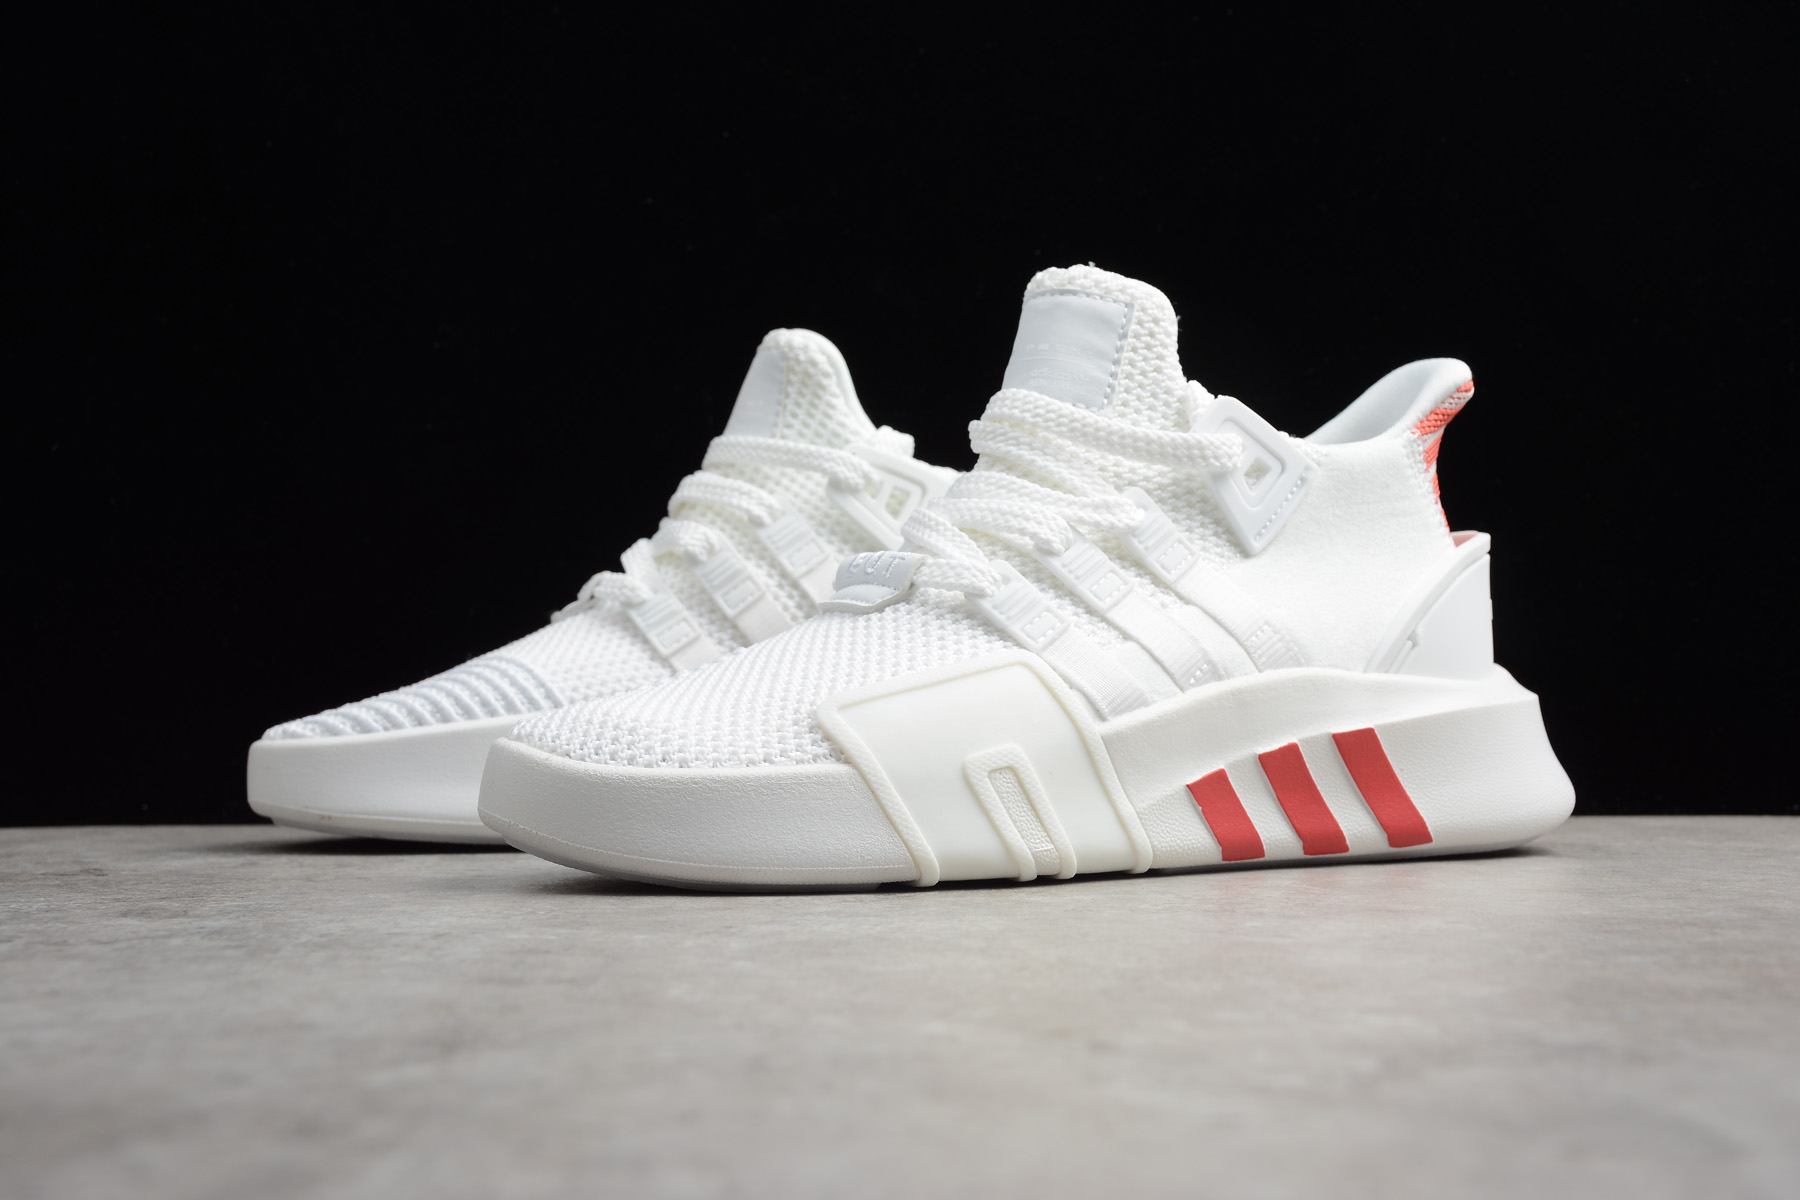 adidas EQT Bask ADV White/Trace Scarlet Men's and Women's Size ...